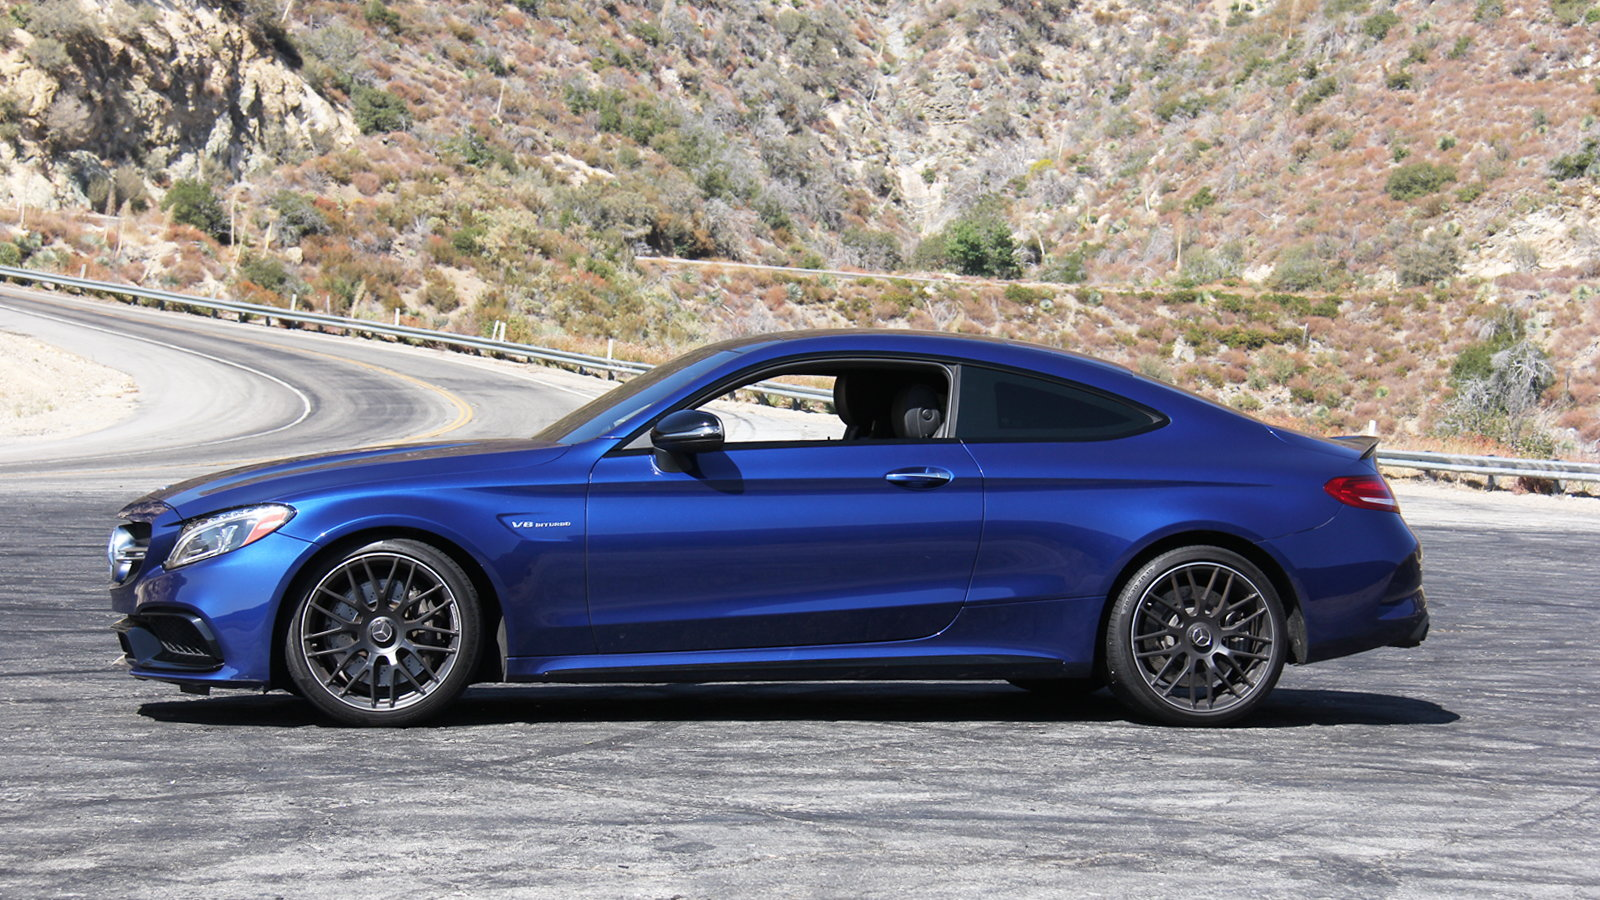 Mercedes-AMG C63 Design and UX Review